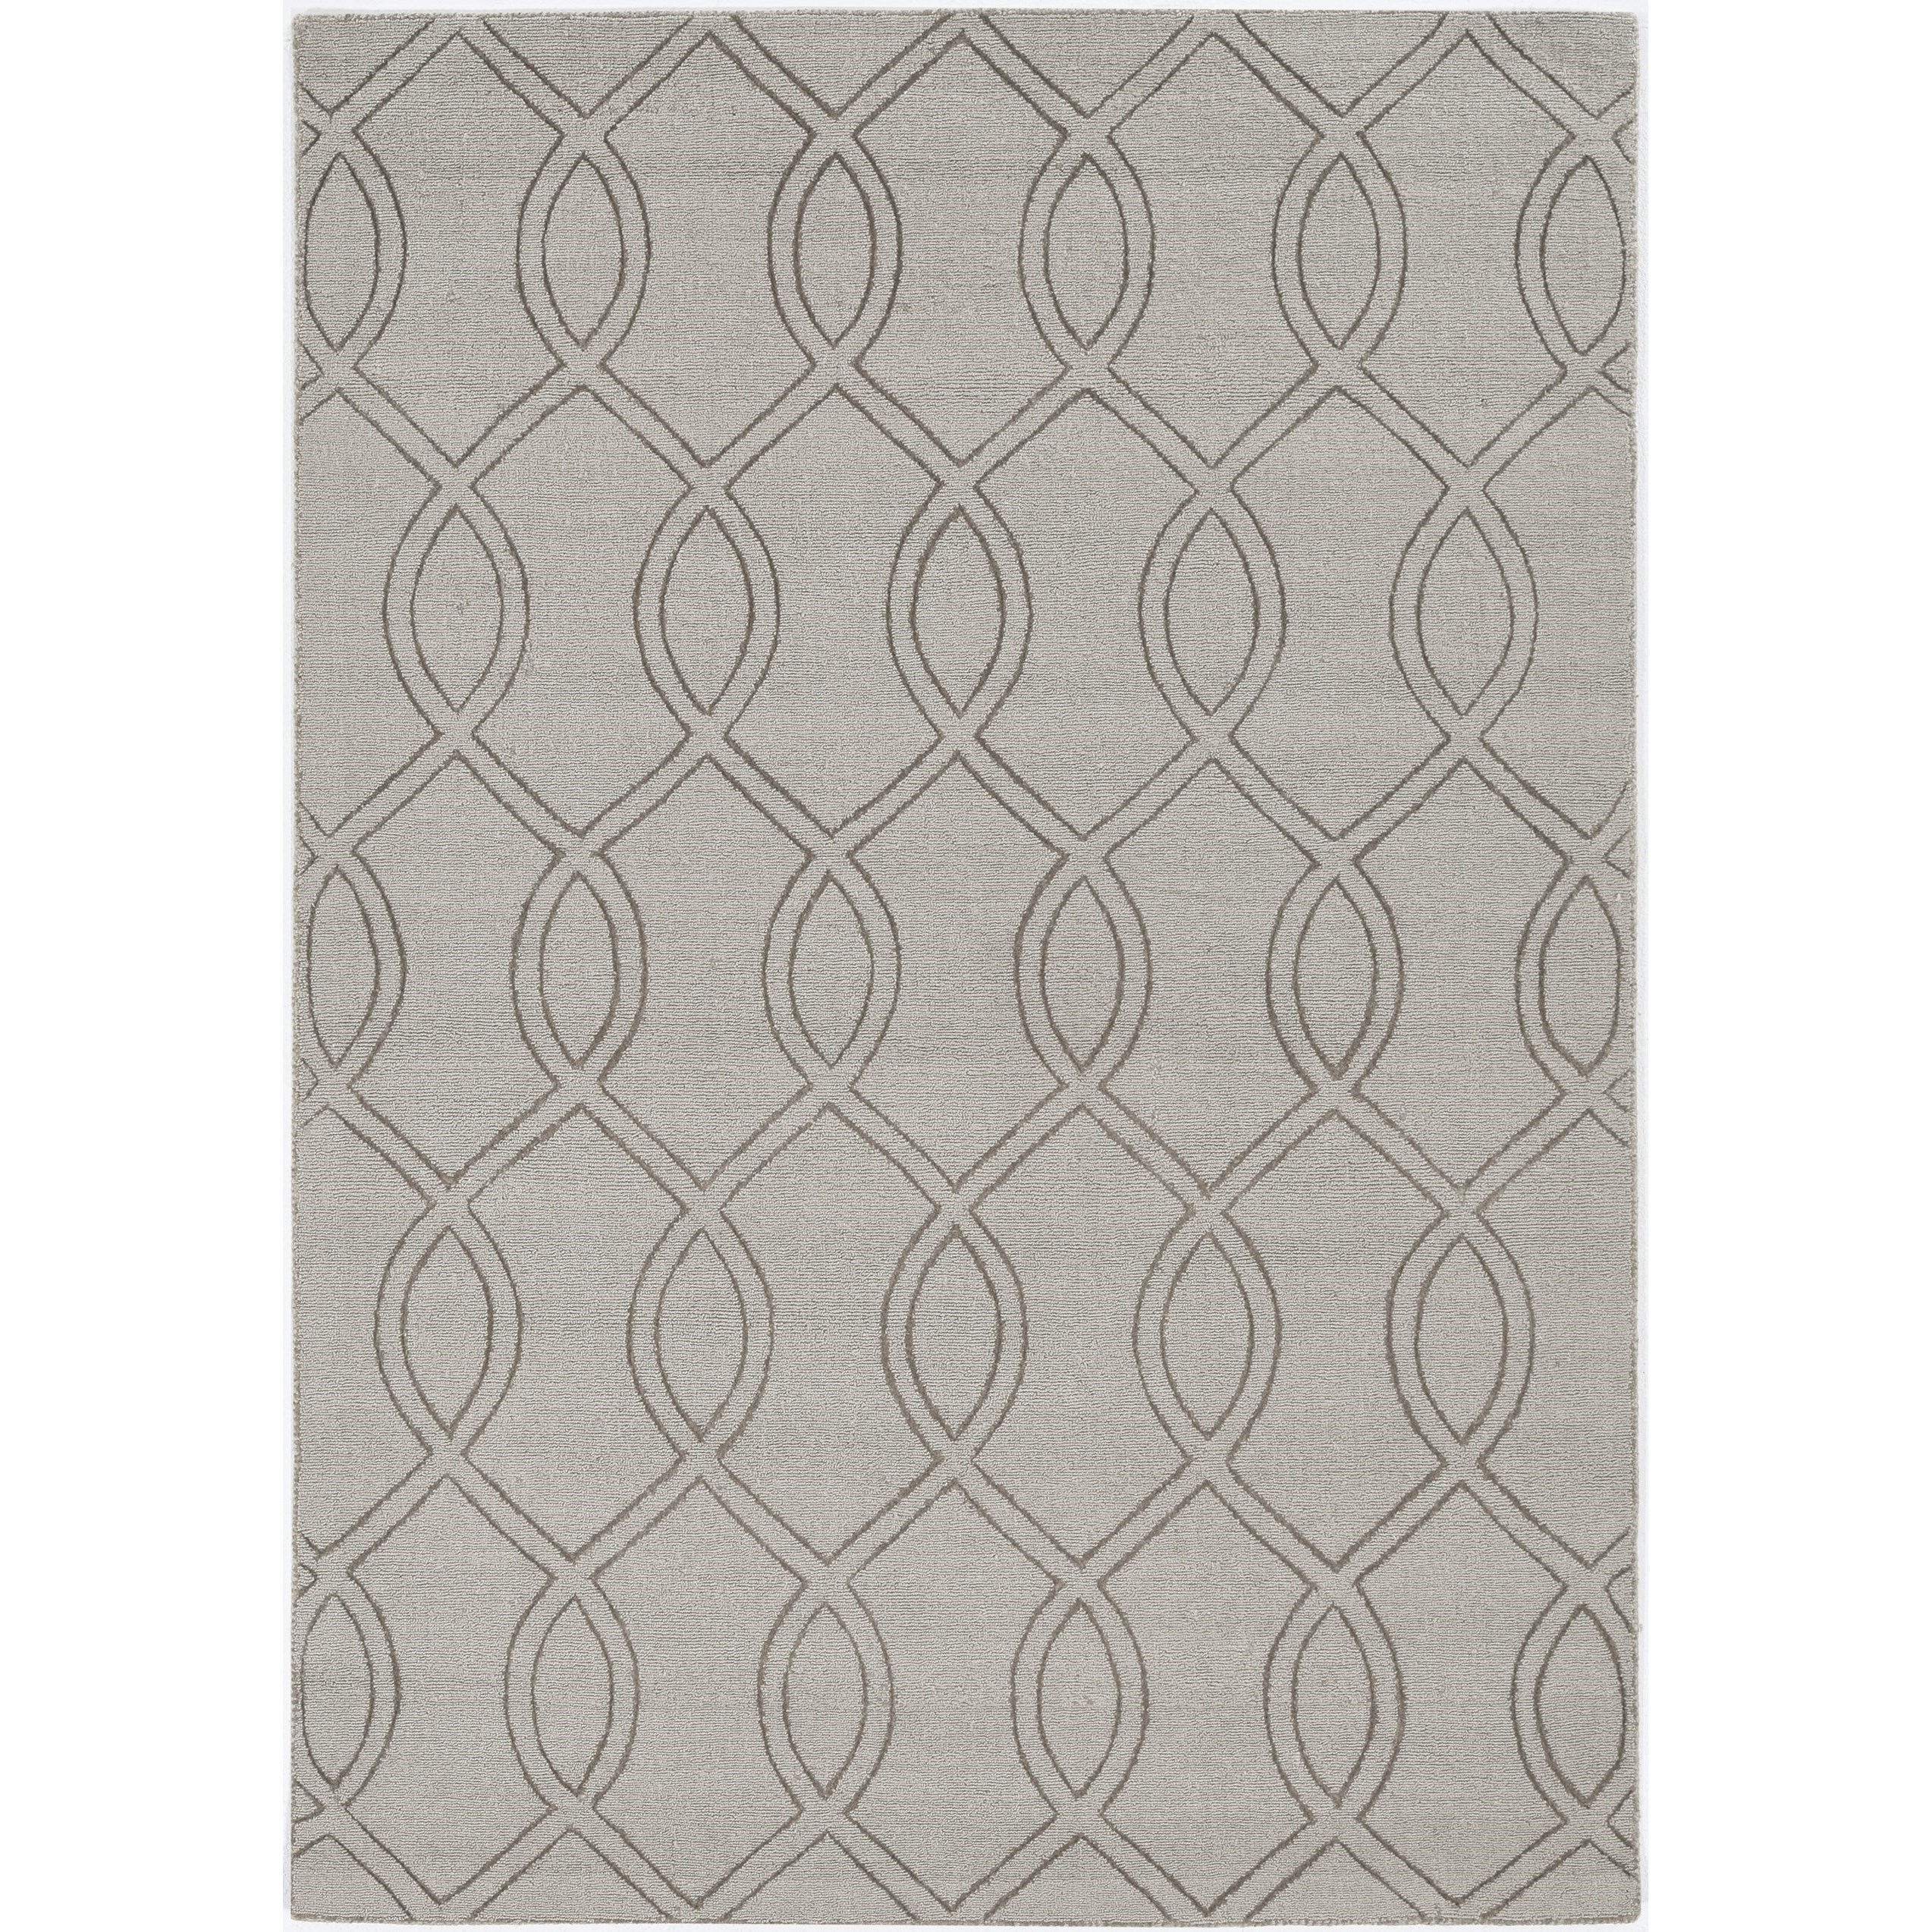 "Avery 7'6"" x 9'6"" Taupe Ellison Rug by Kas at Darvin Furniture"